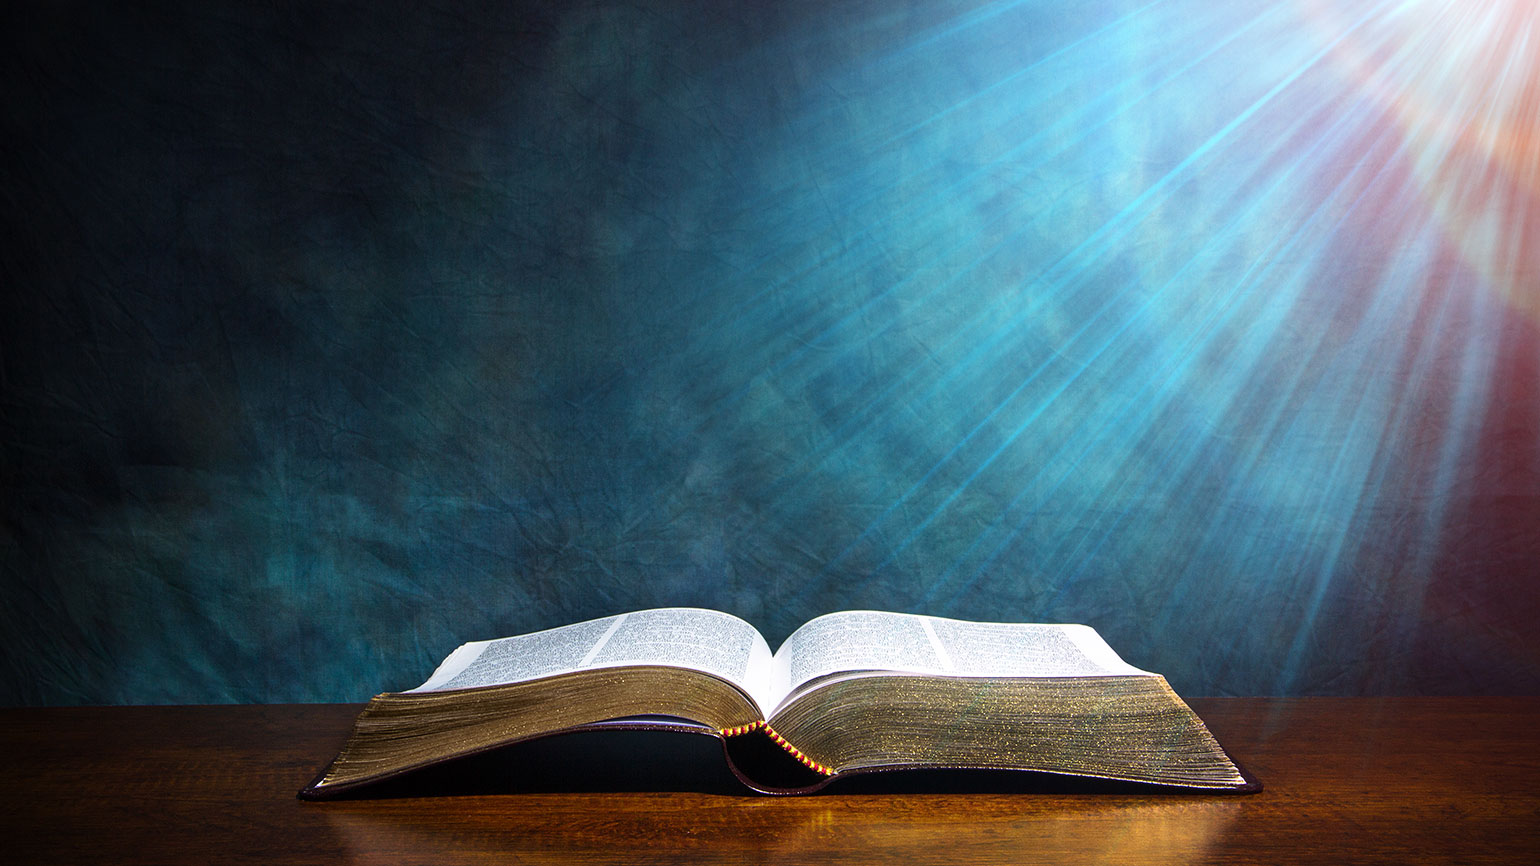 A heavenly light shines down on an open Bible